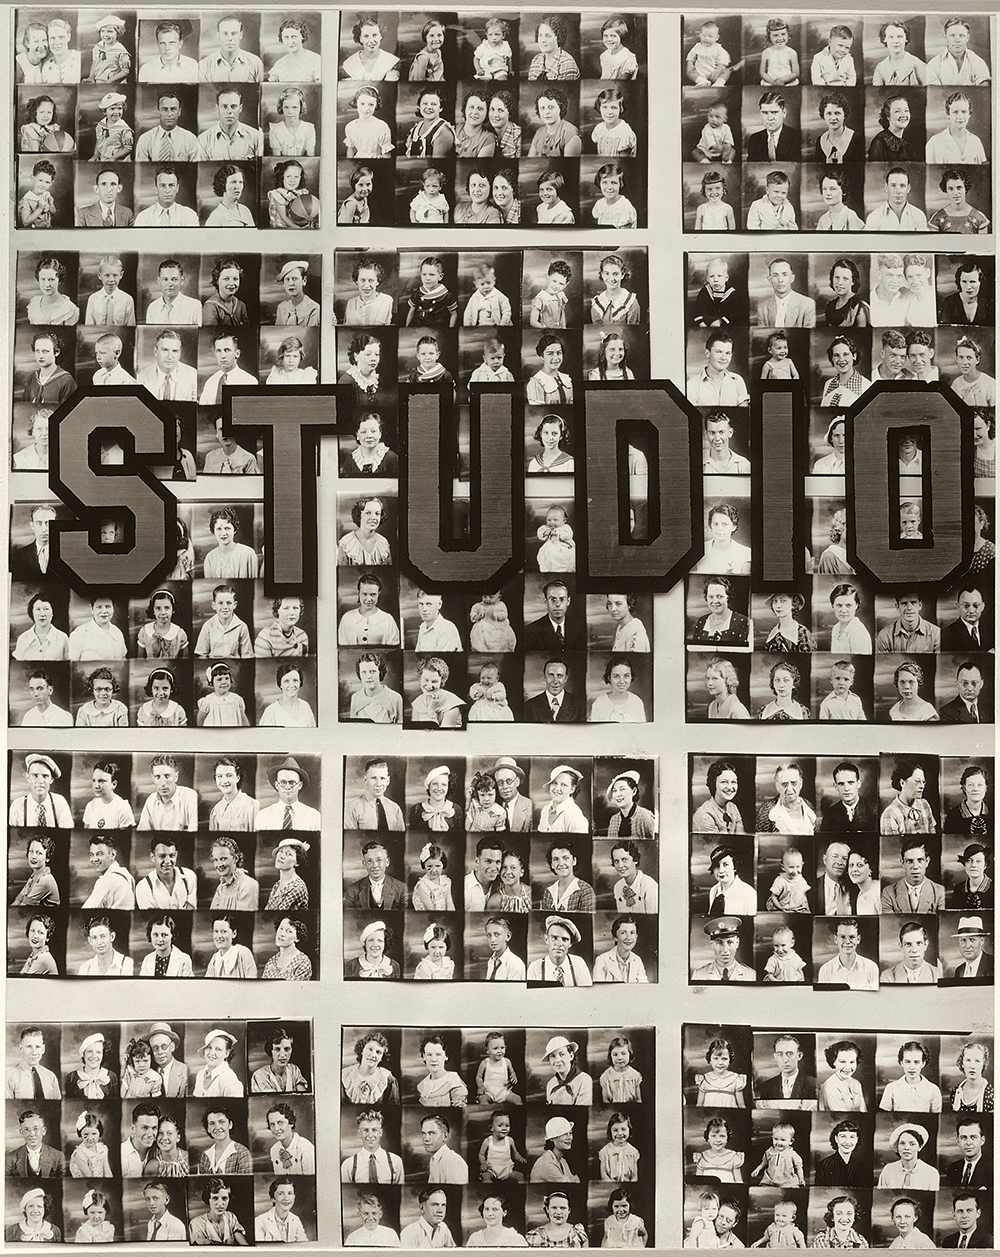 A grid of small black and white portraits overlaid with the word STUDIO in block letters